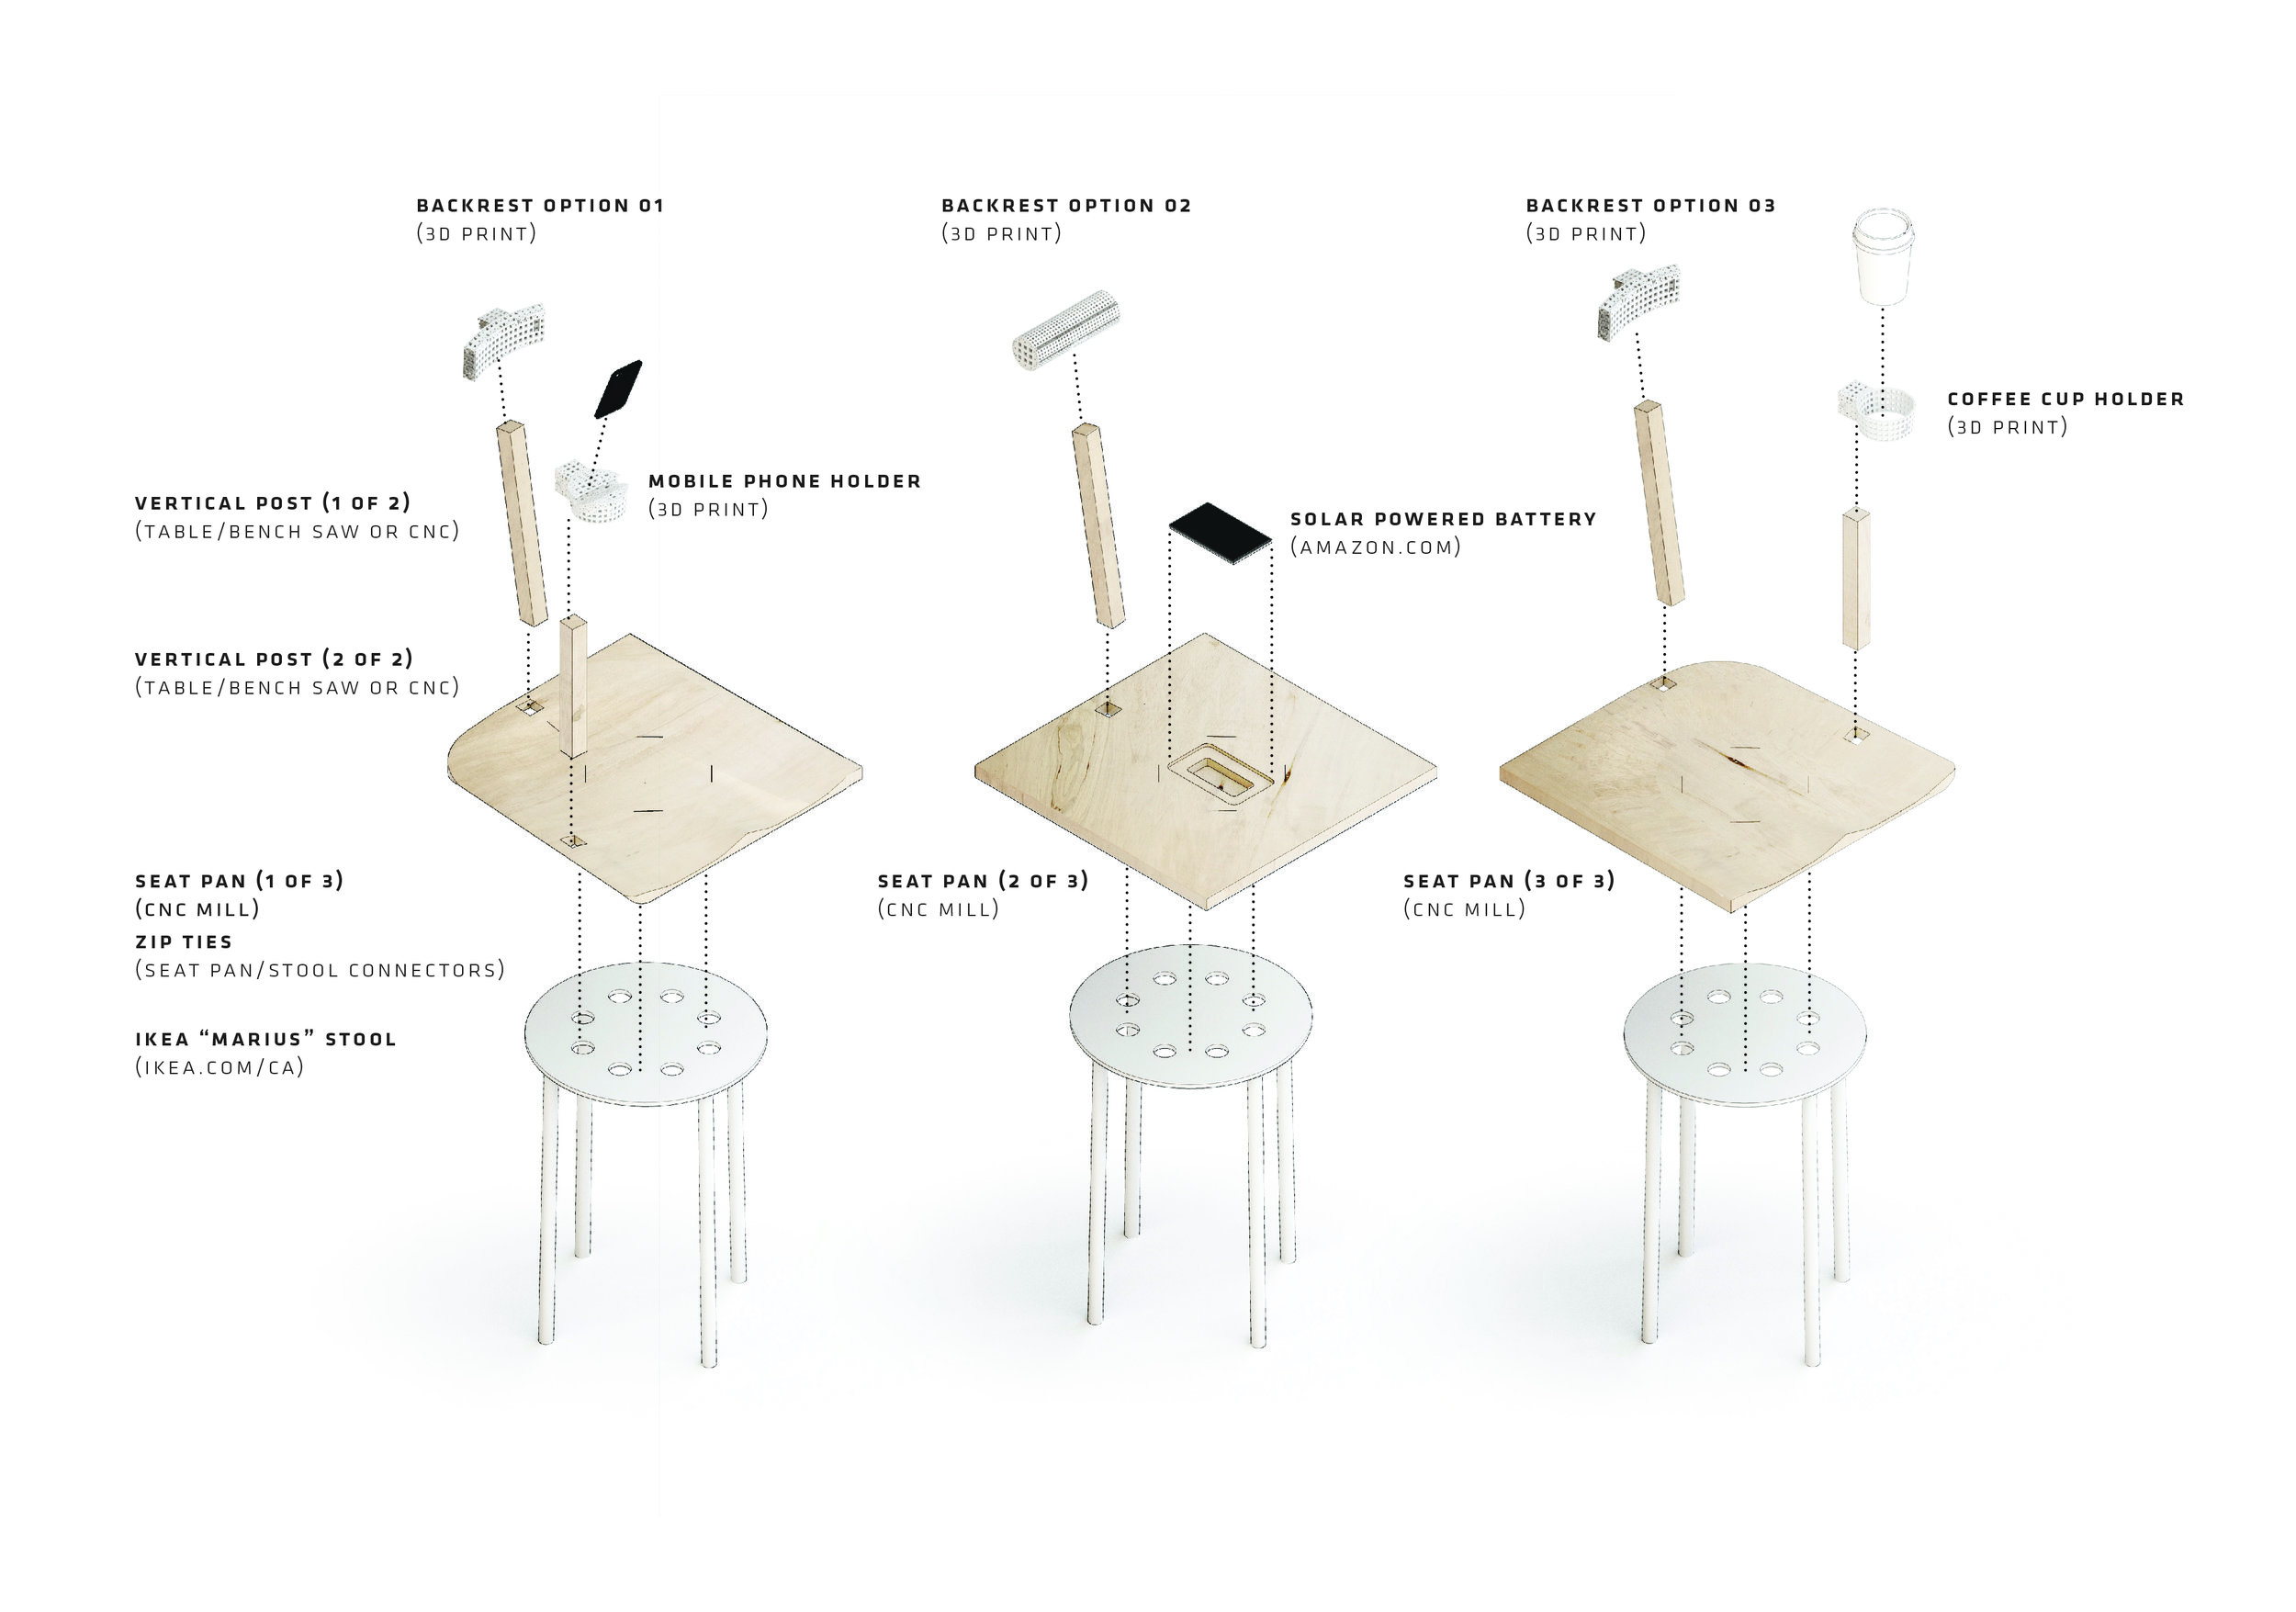 Chair Components (IKEA MARIUS stool, CNC Wooden Components, 3D Printed Backrests, 3D Printed Mobile Phone Holder, 3D Printed Coffee Cup Holder, Solar Powered Mobile Device Charger)